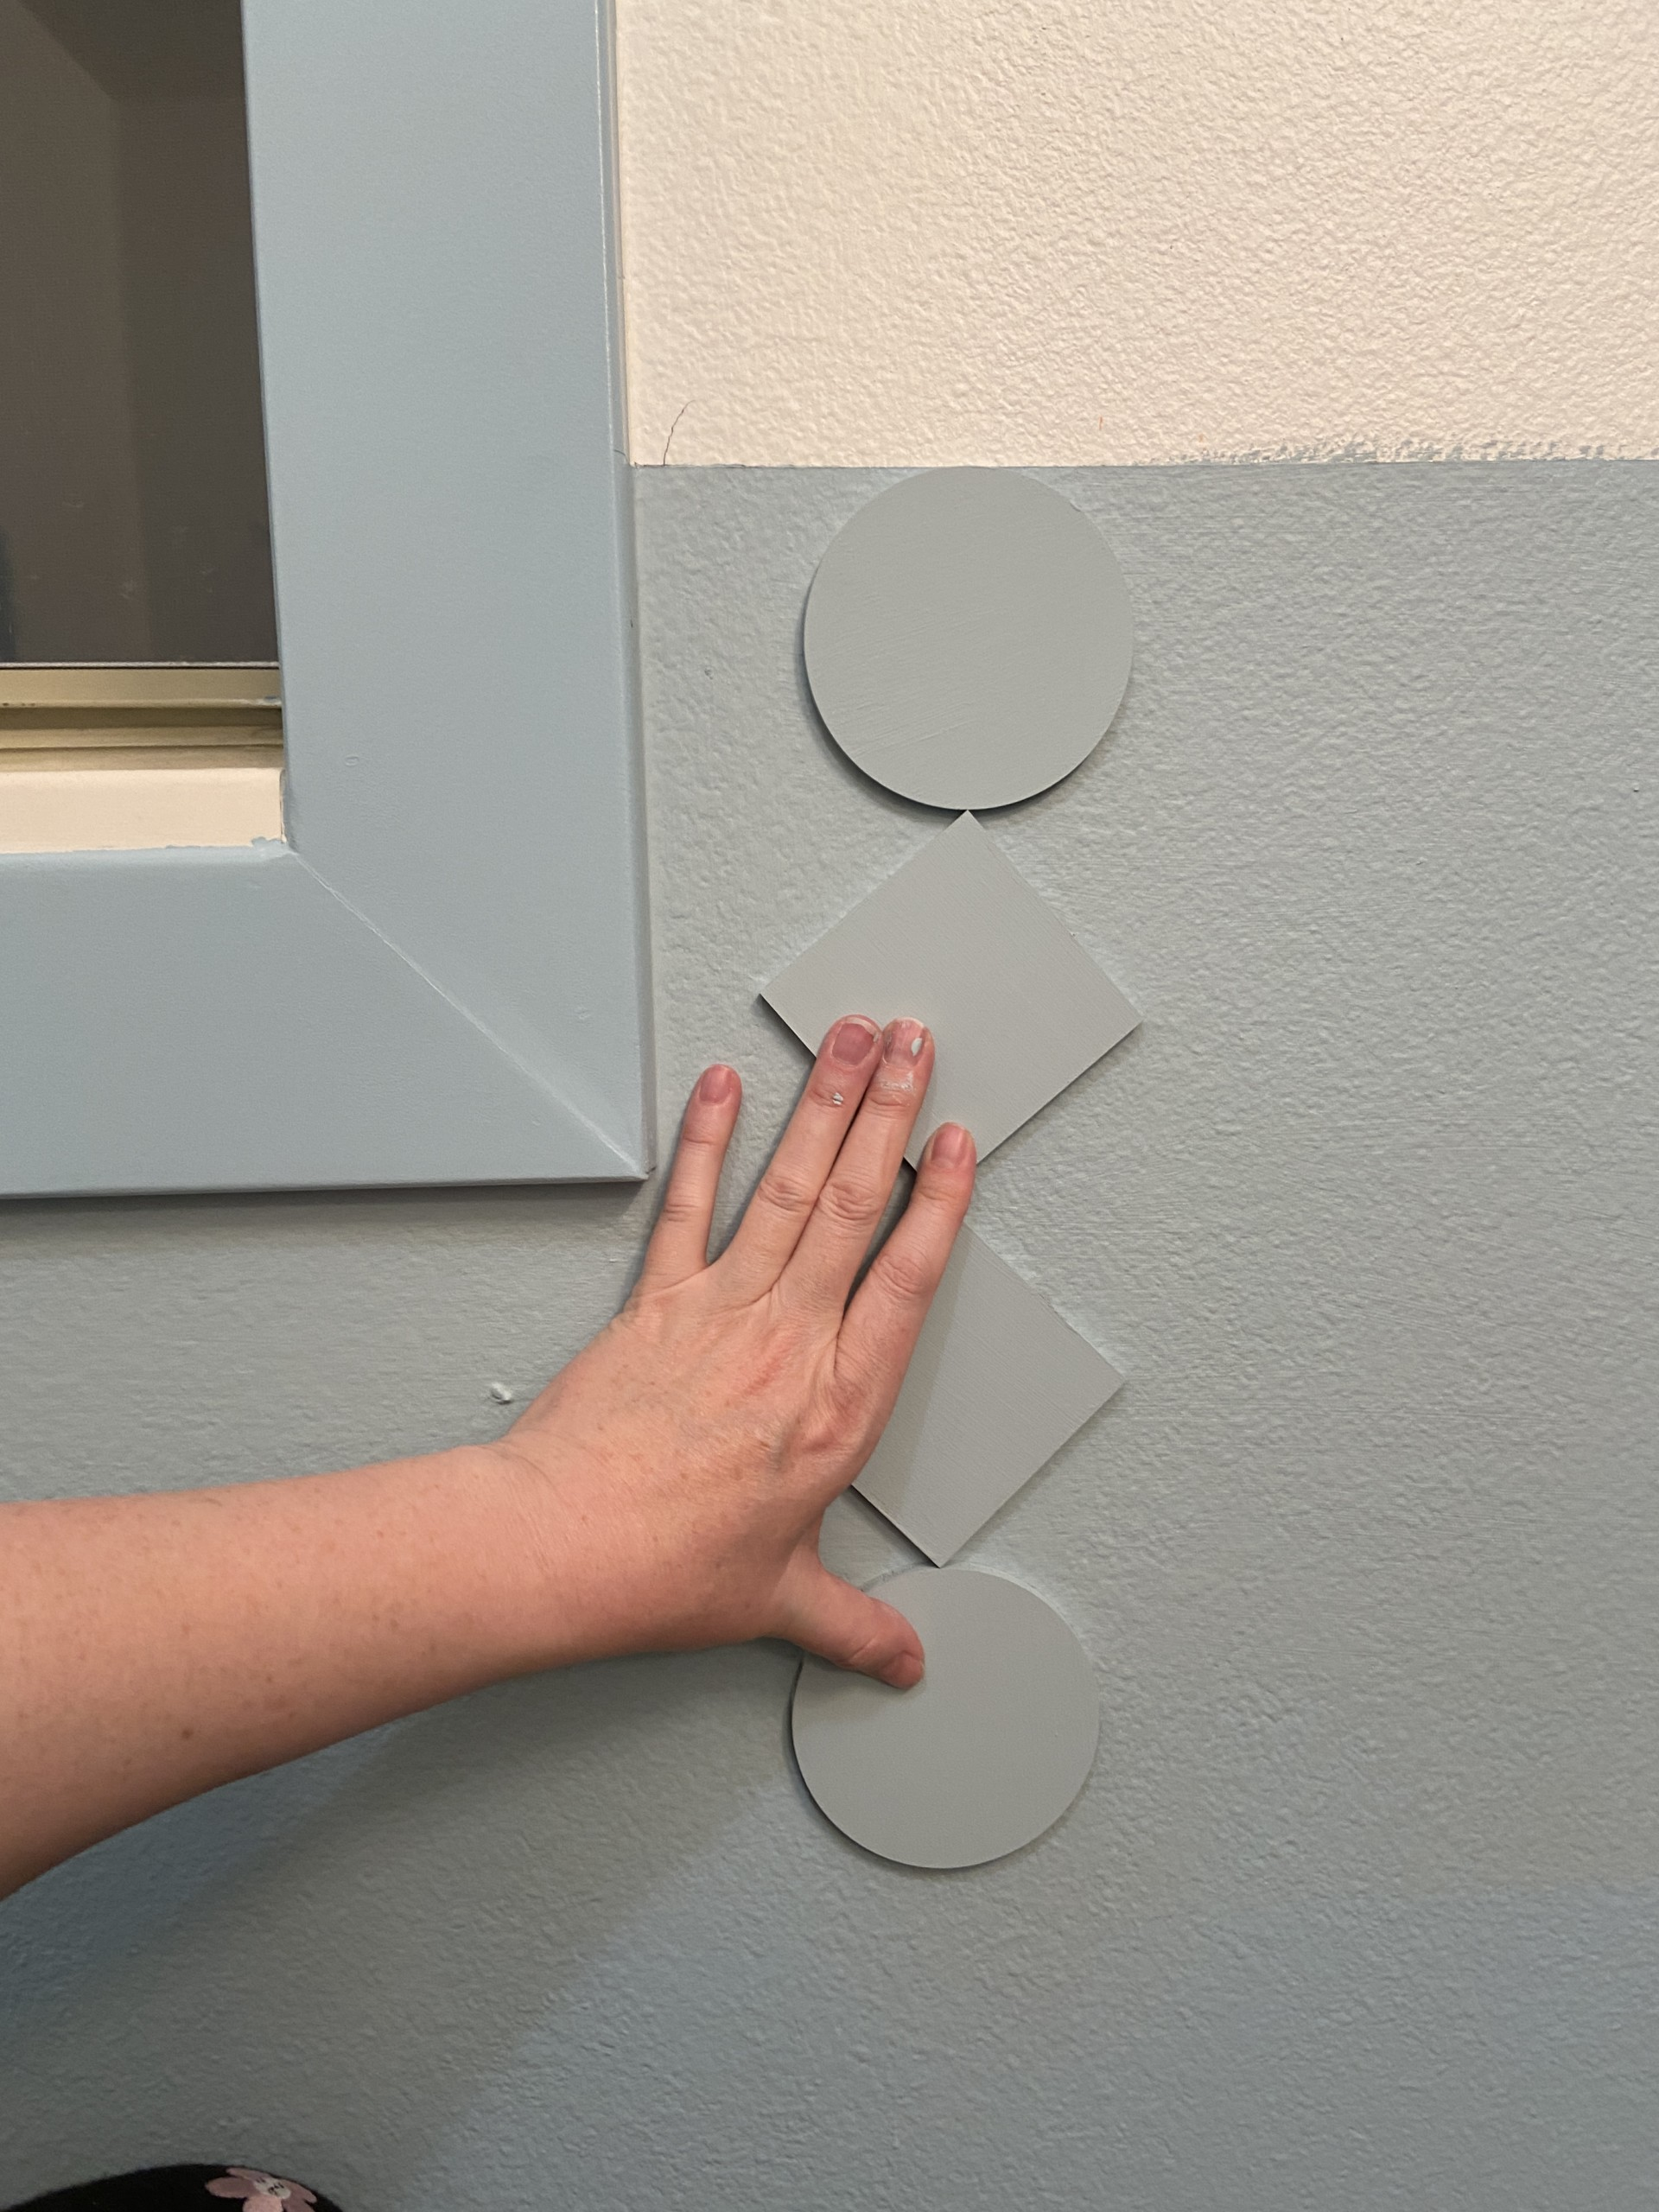 A hand reaches into frame from the left and holds up blue painted cutouts against a blue and white wall.